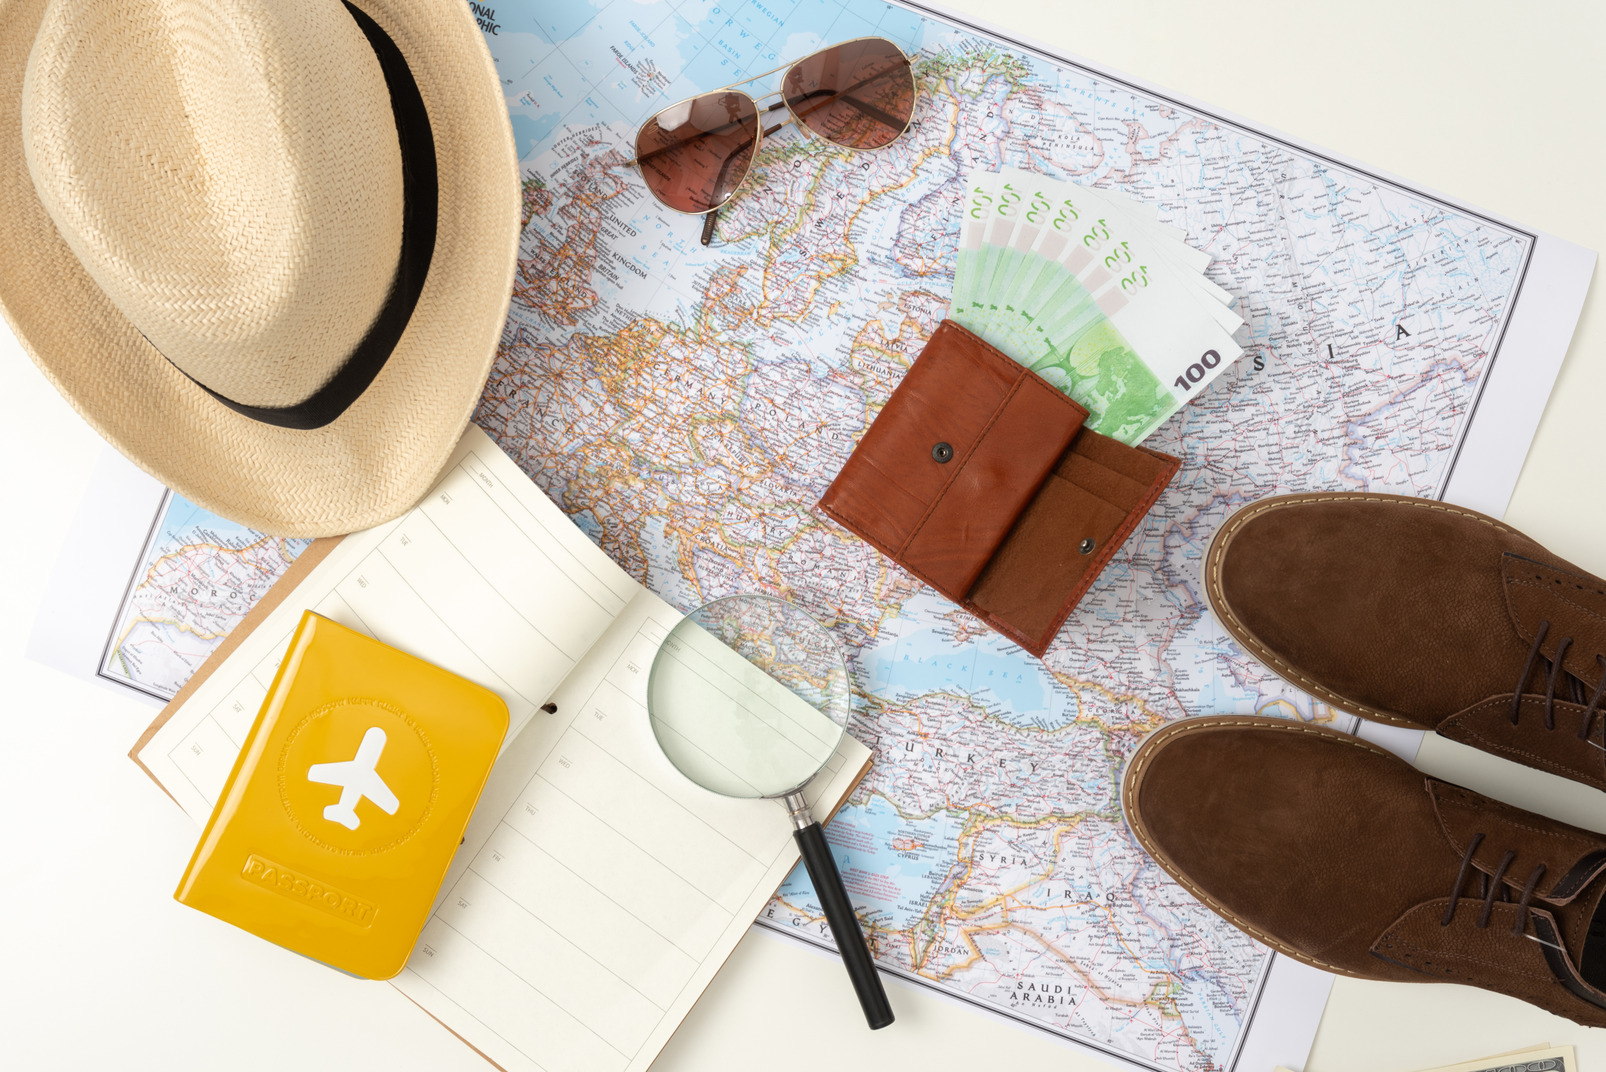 Only necessary things for a travel: a straw hat, comfortable boots, smartphone, sunglasses, passport and money